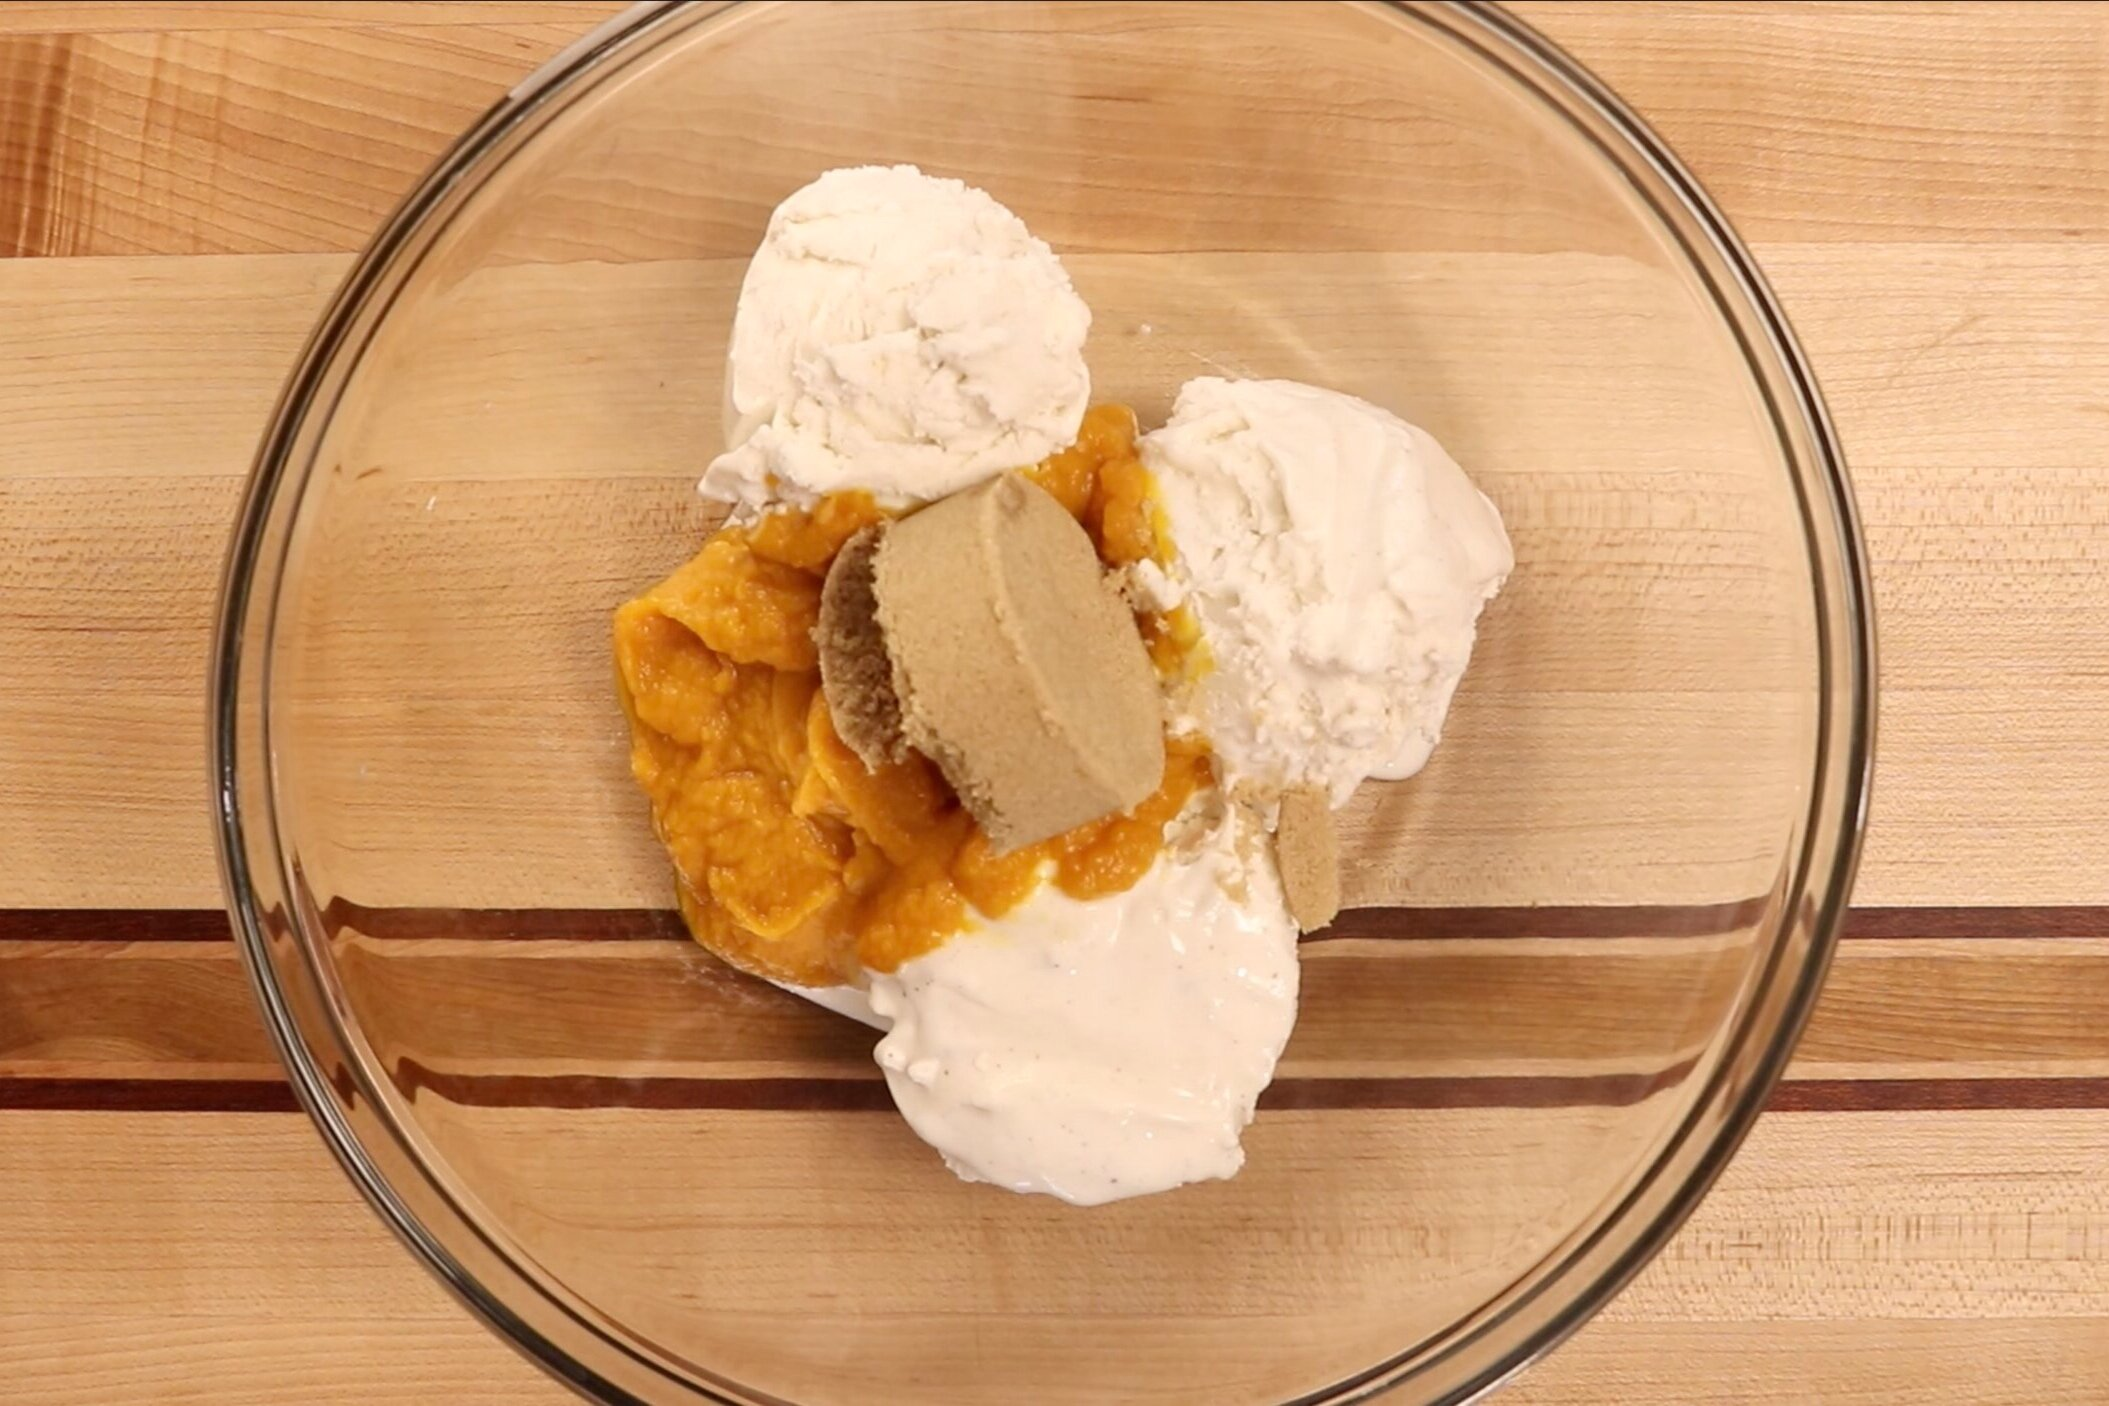 6. In a large bowl, add the ice cream, pumpkin and brown sugar. Beat until smooth and creamy. -